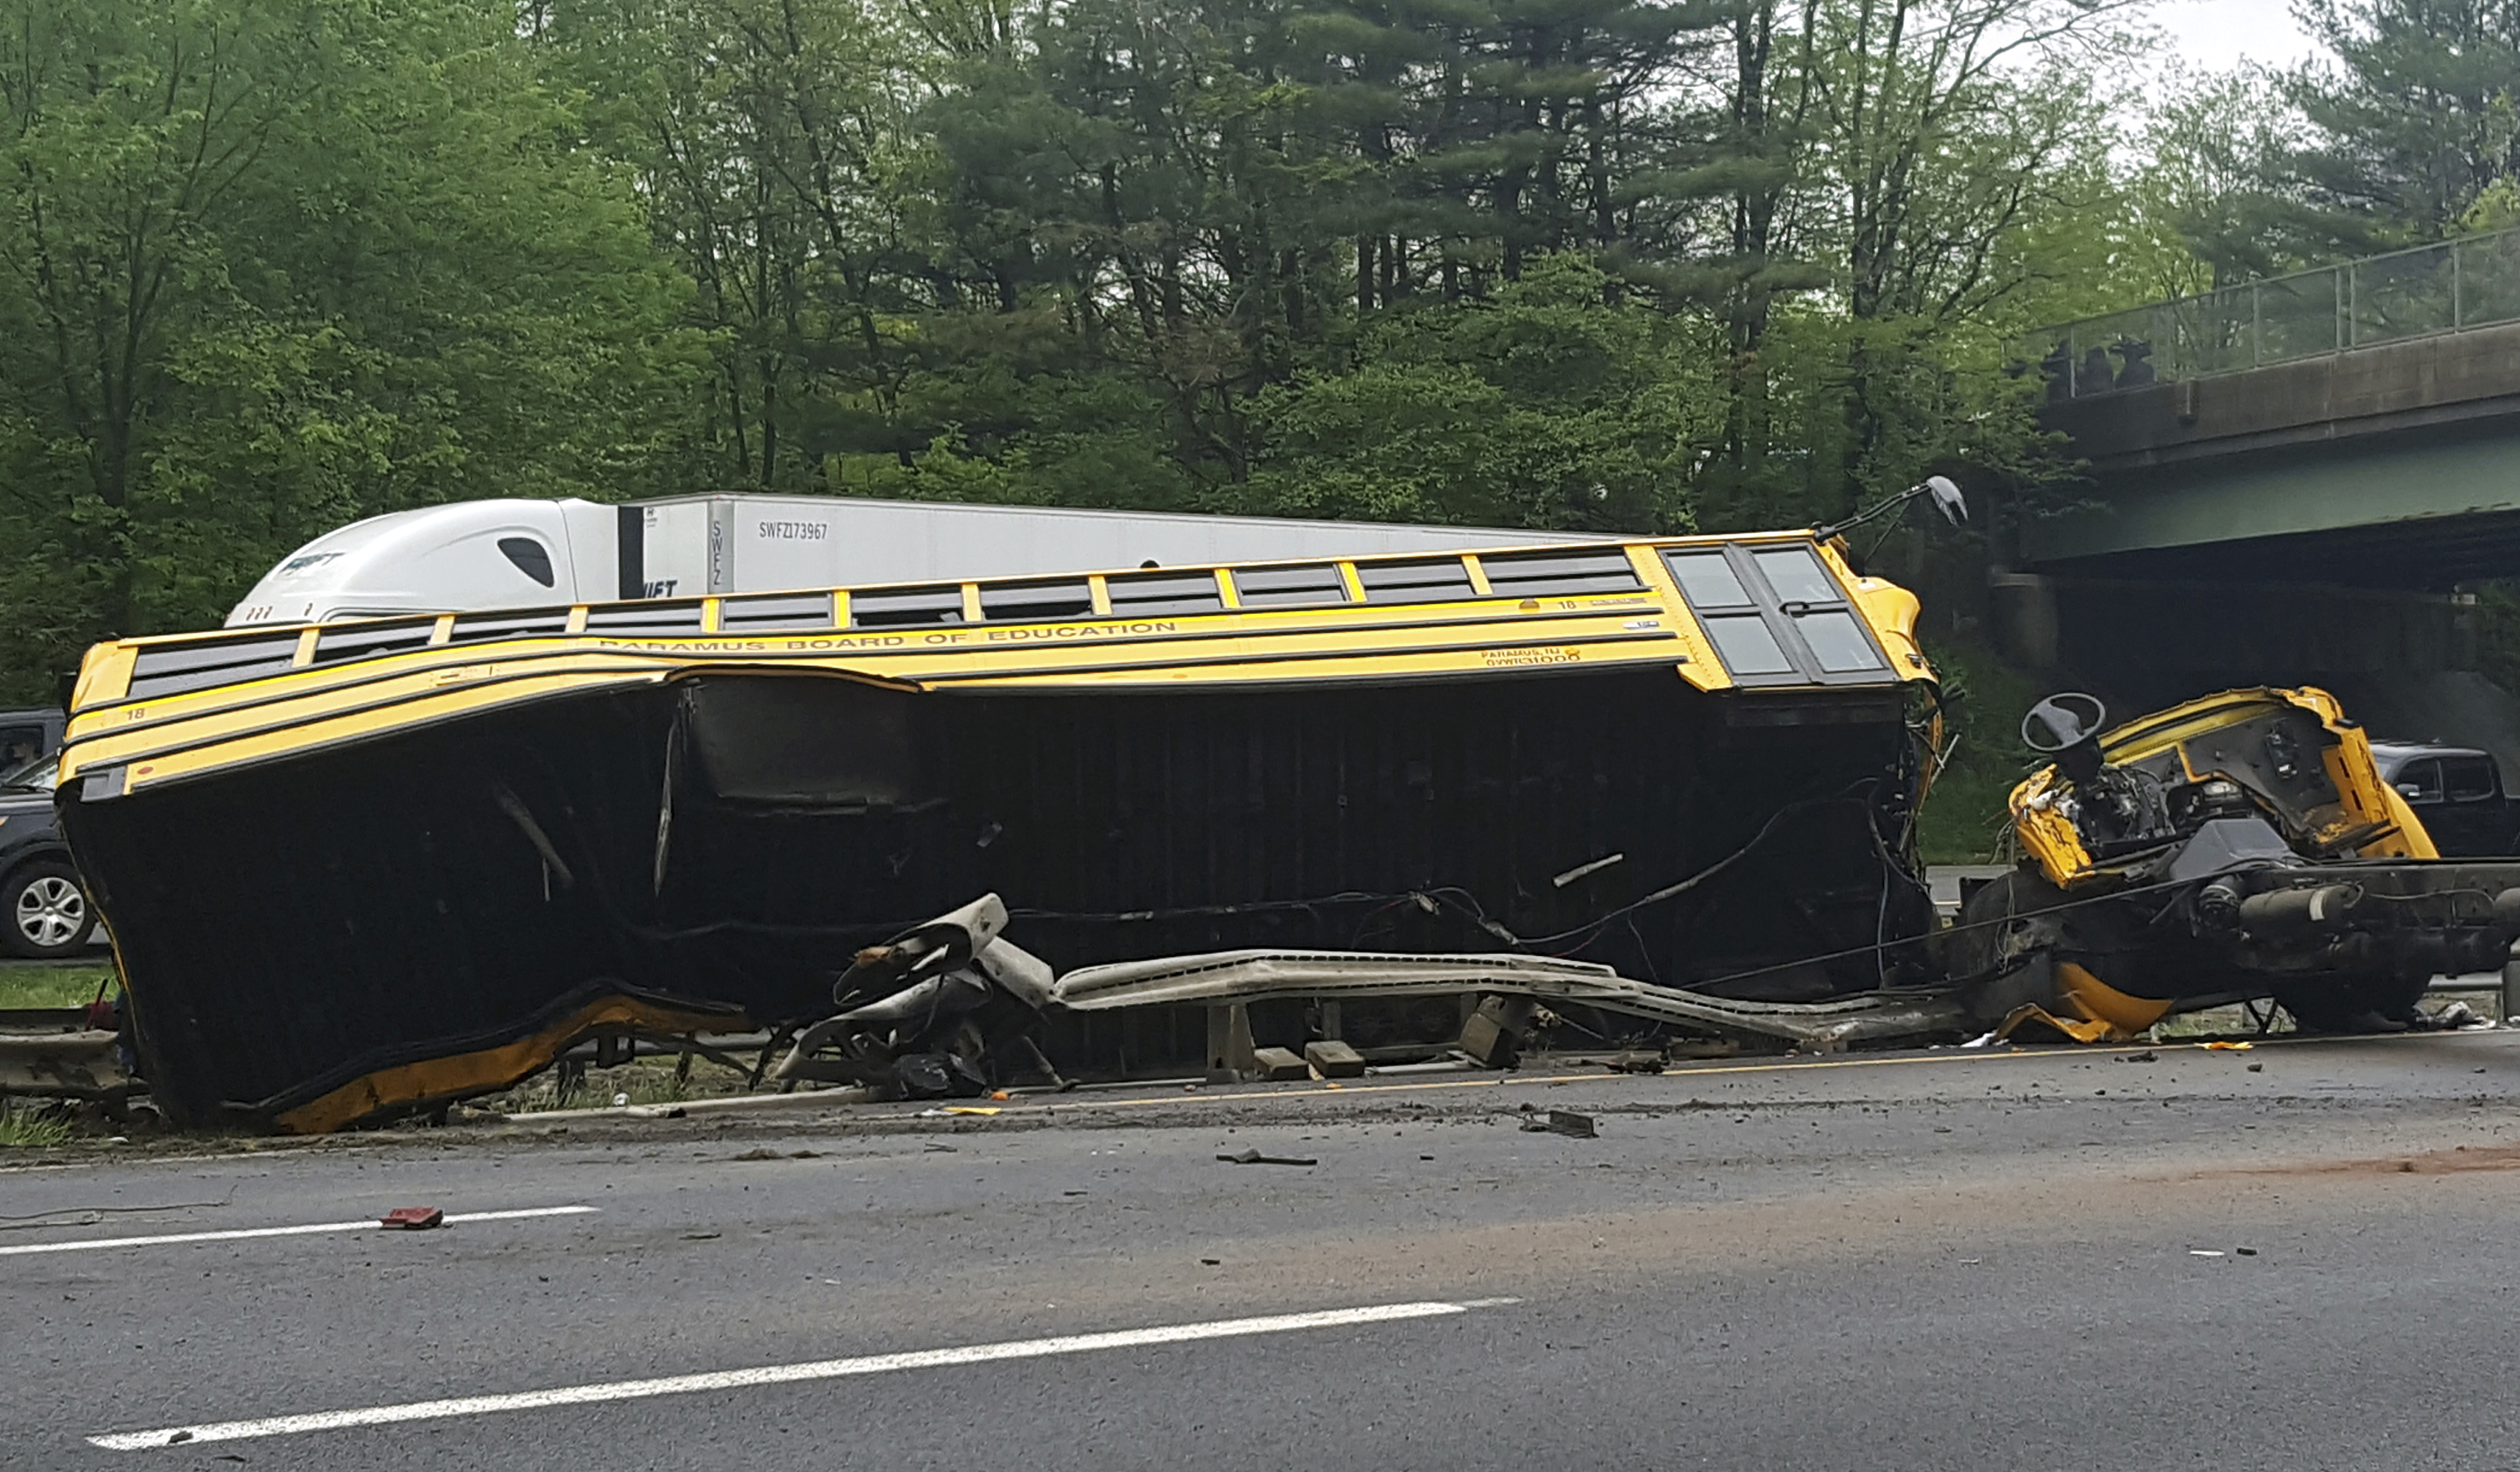 The wrecked school bus in New Jersey